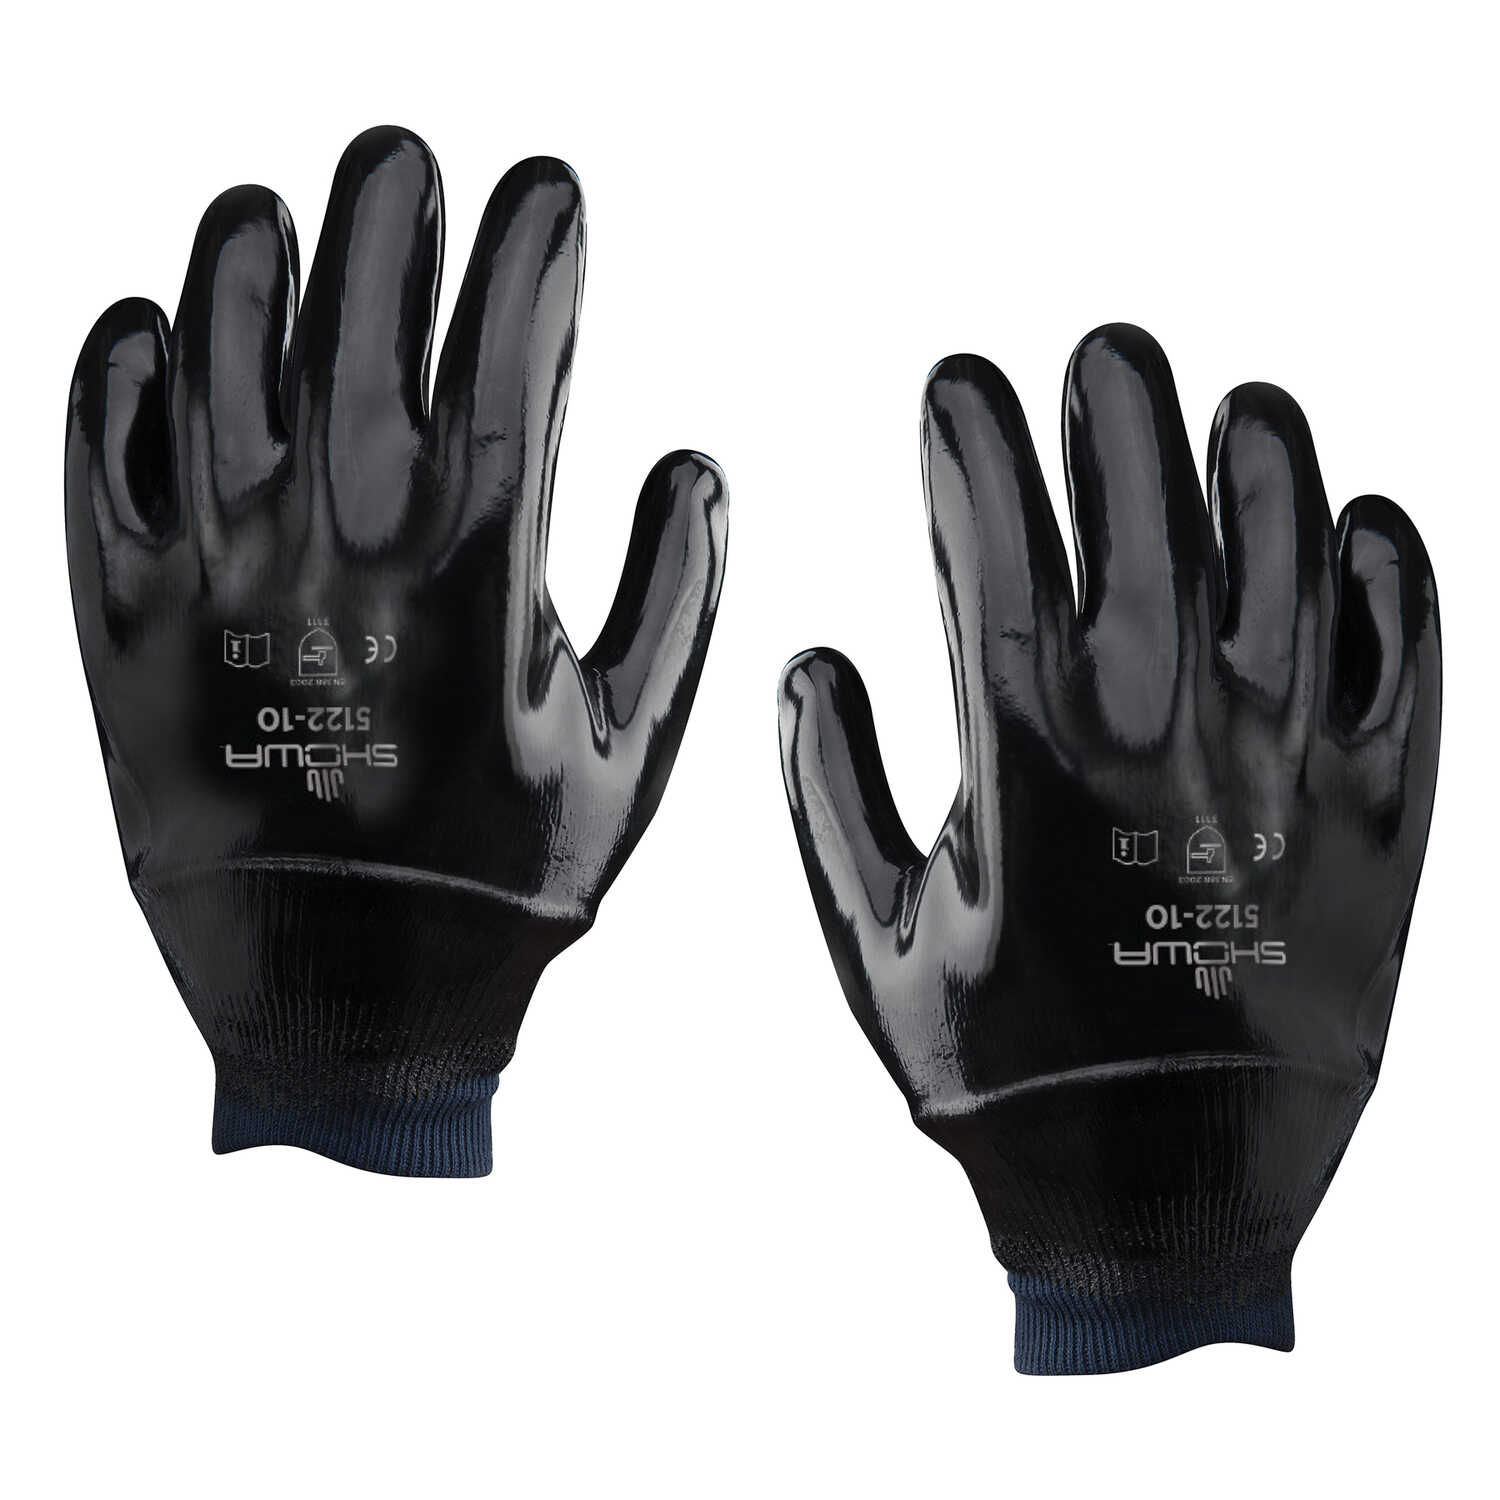 Showa  Unisex  Indoor/Outdoor  Neoprene  Cuffed  Chemical Gloves  Black  L